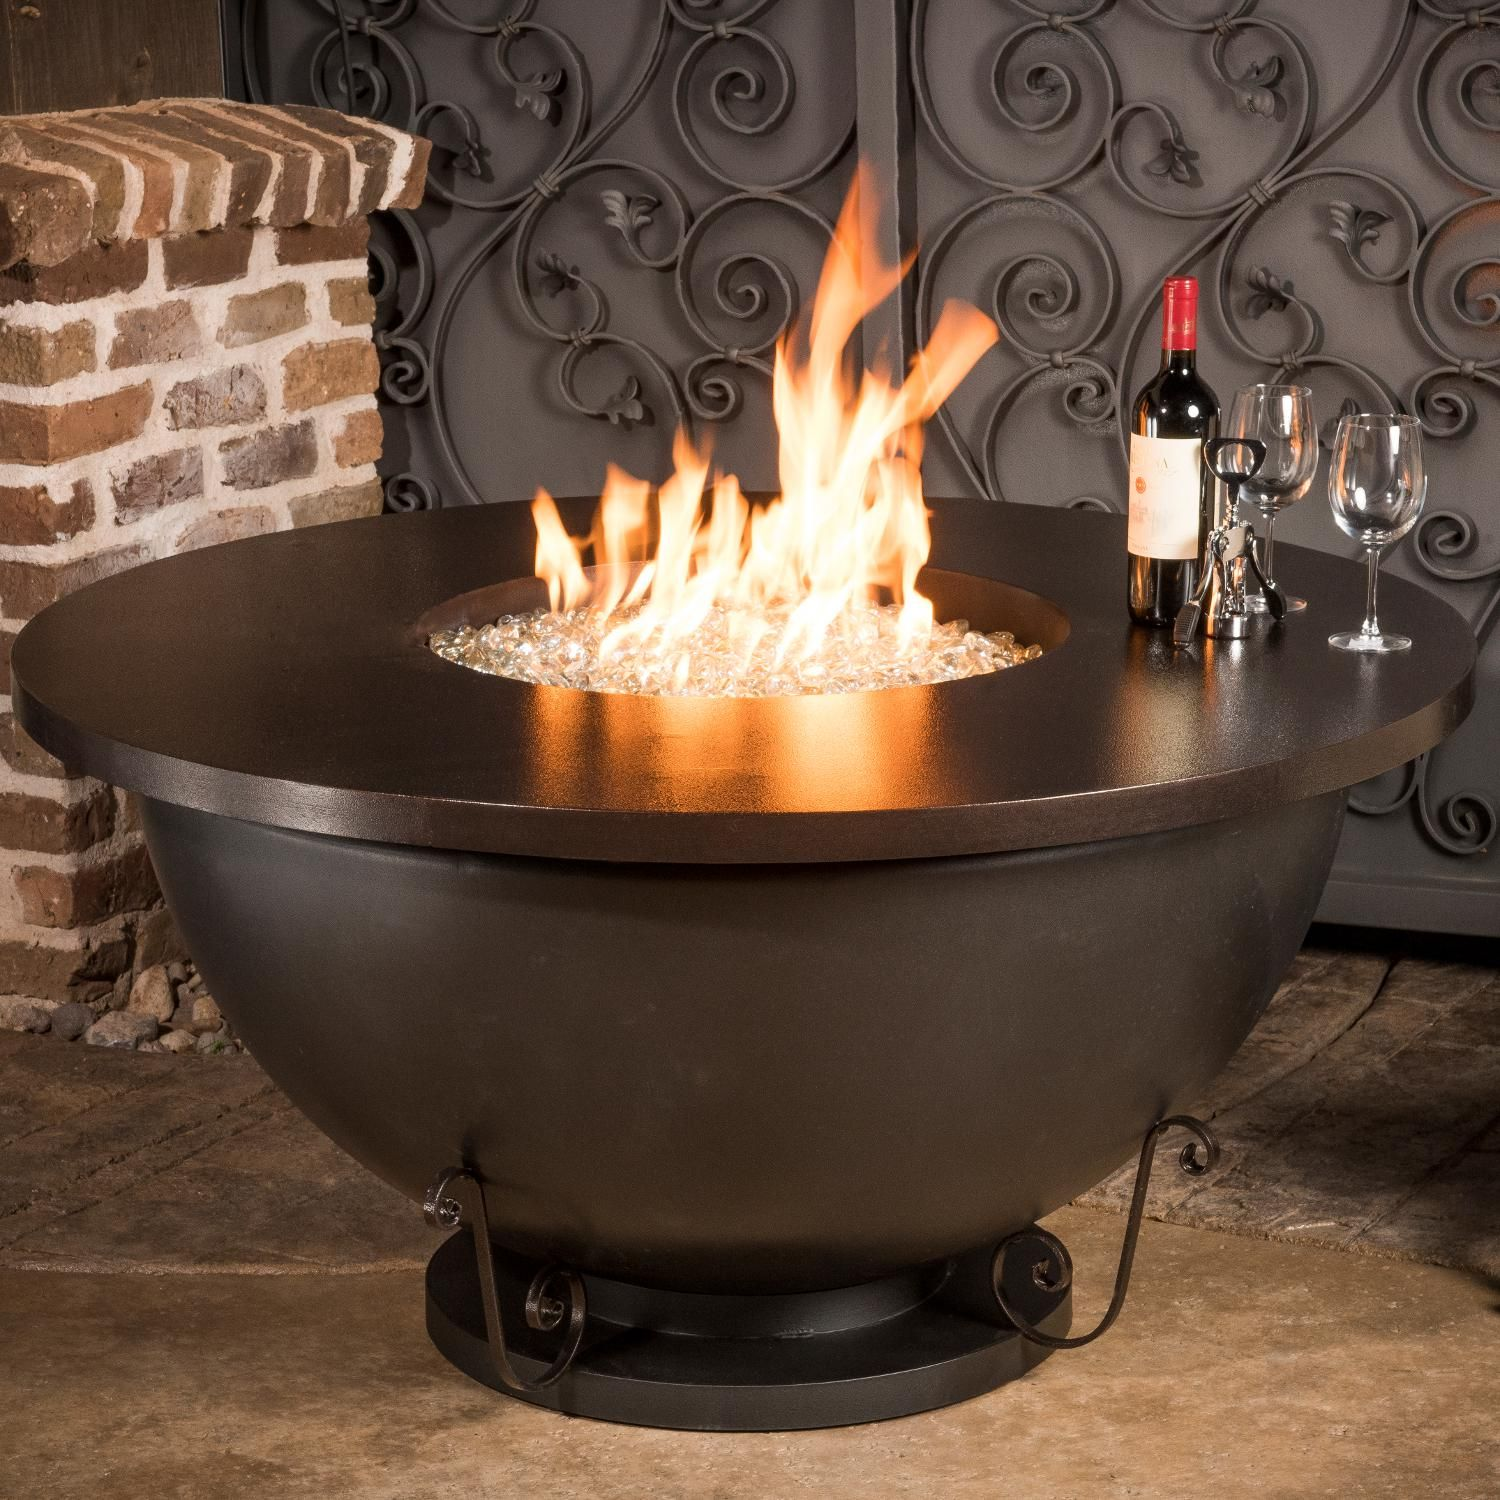 Classic Round Propane Gas Bowl Fire Table Fire Pit Fire Pit Bowl Gas Firepit